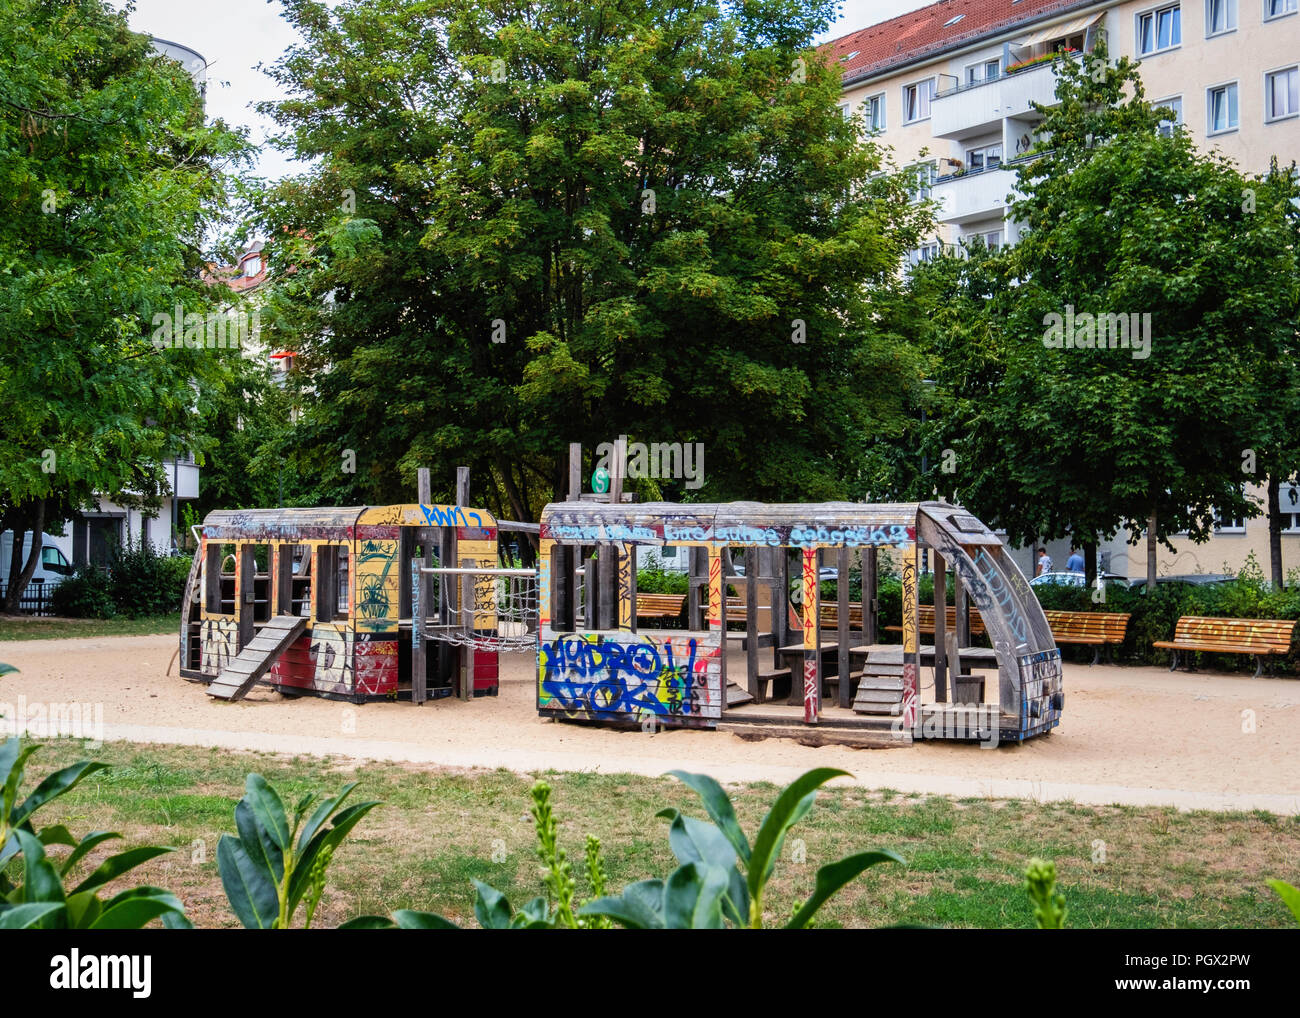 Spielplatz Berlin Westend Childrens Playground Germany German Stock Photos Childrens